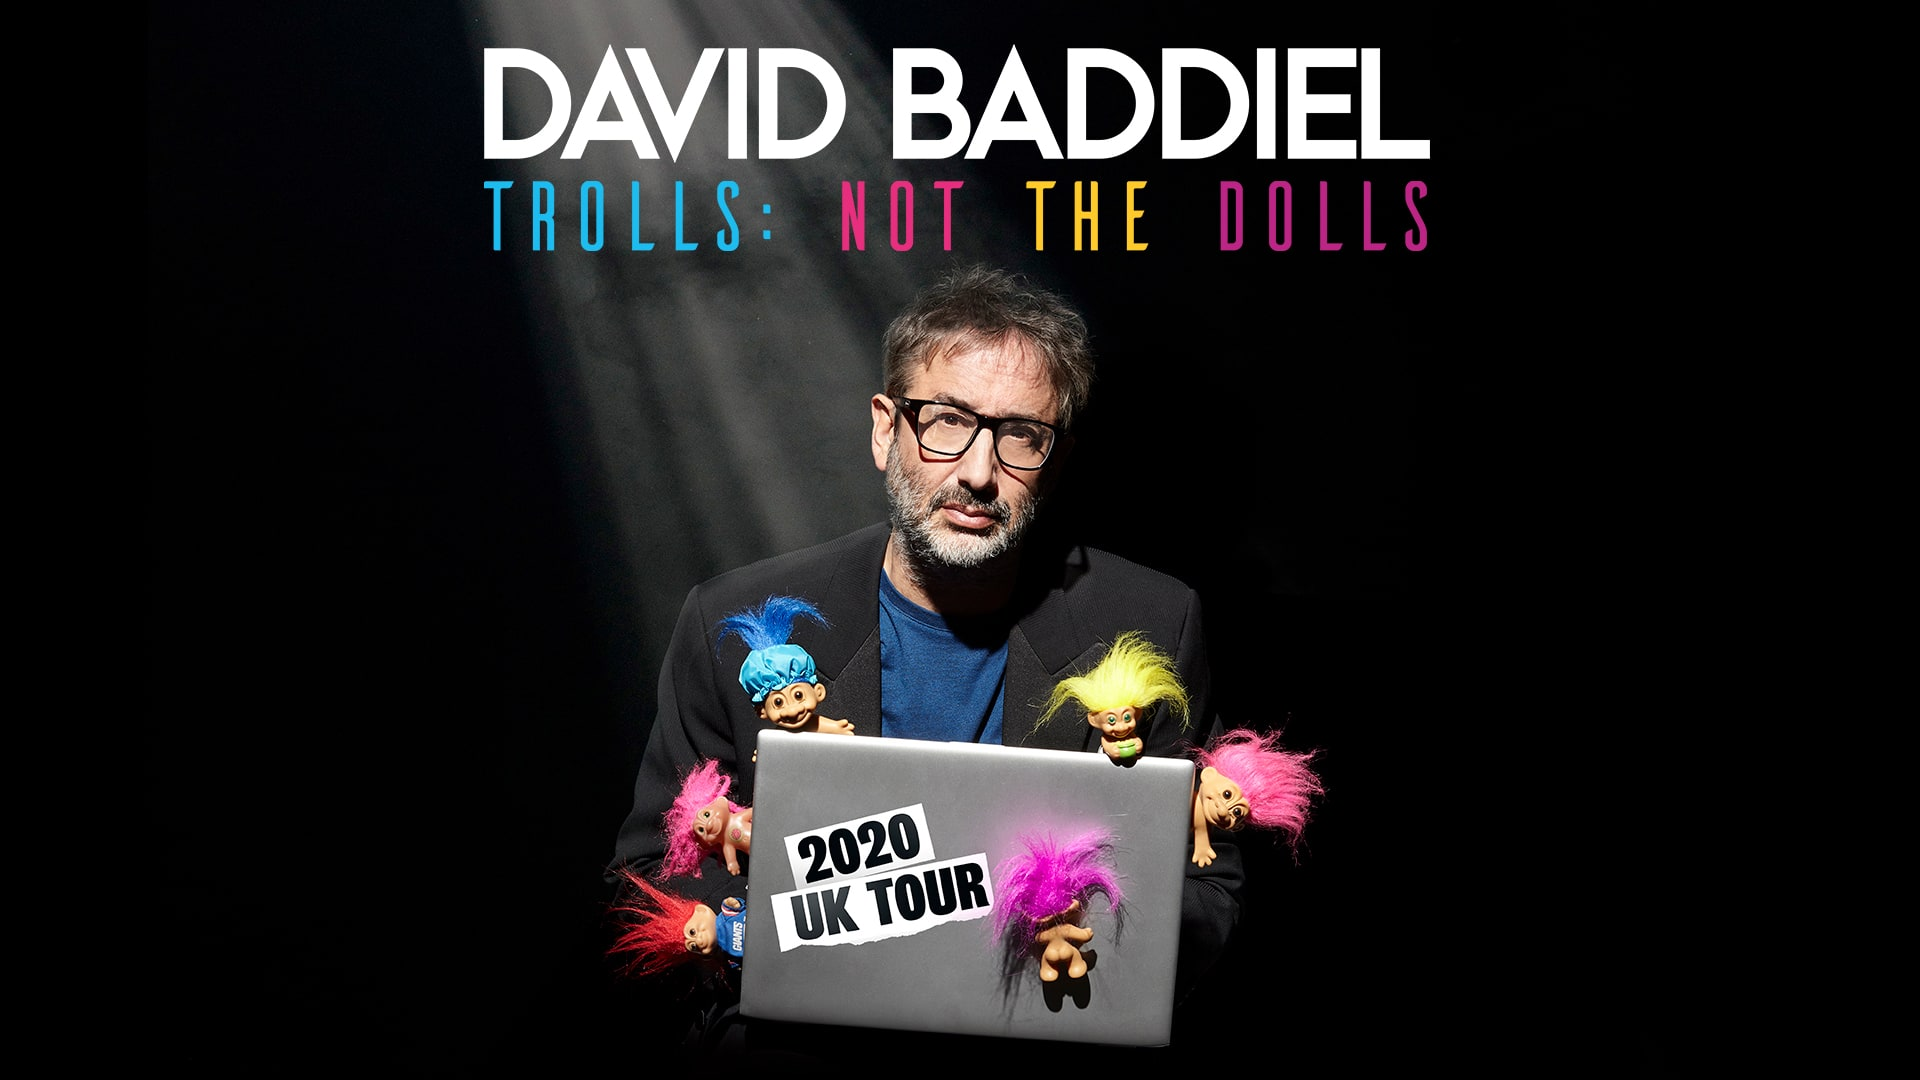 David Baddiel - Trolls Not The Dolls Title Shot